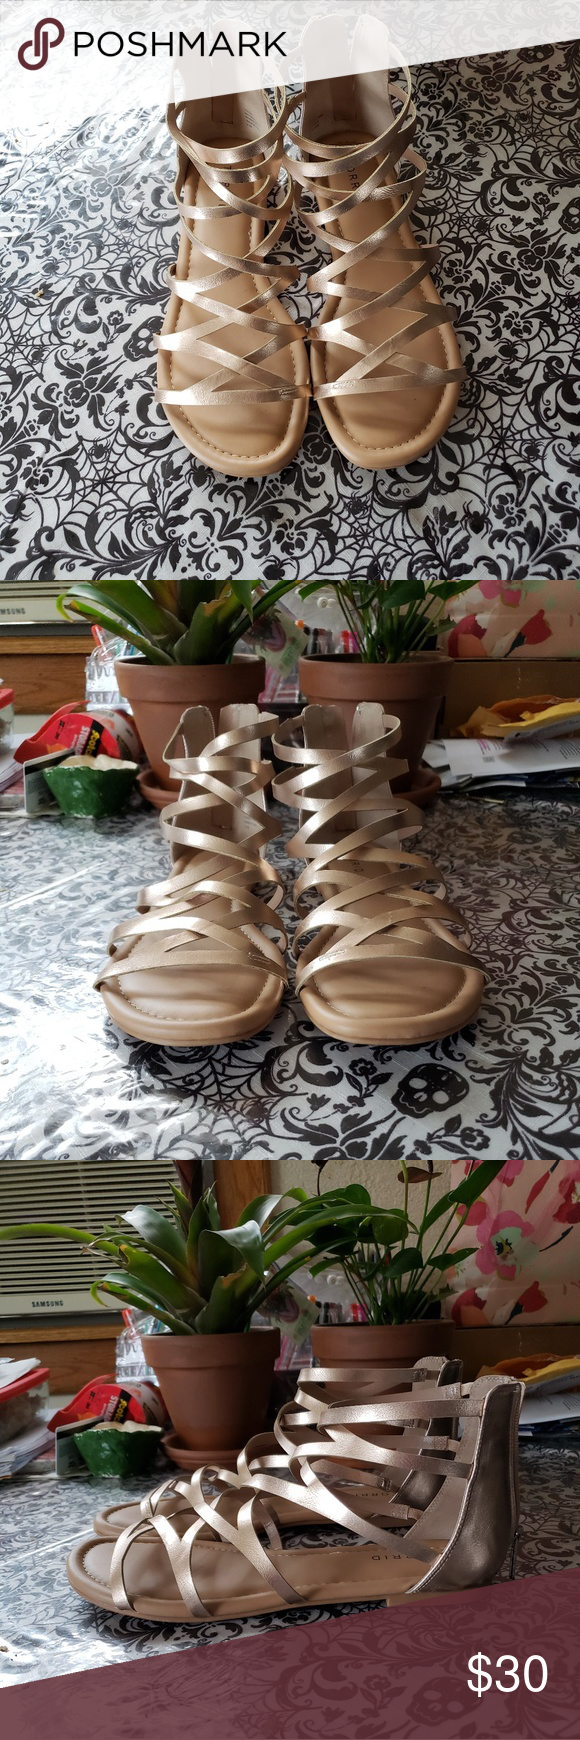 0a8f653f31b Torrid Gladiator Sandals (Wide Width) Too wide for my ankles   too tall for  my feet. Beautiful metallic rose gold color. Worn once  in immaculate  condition.